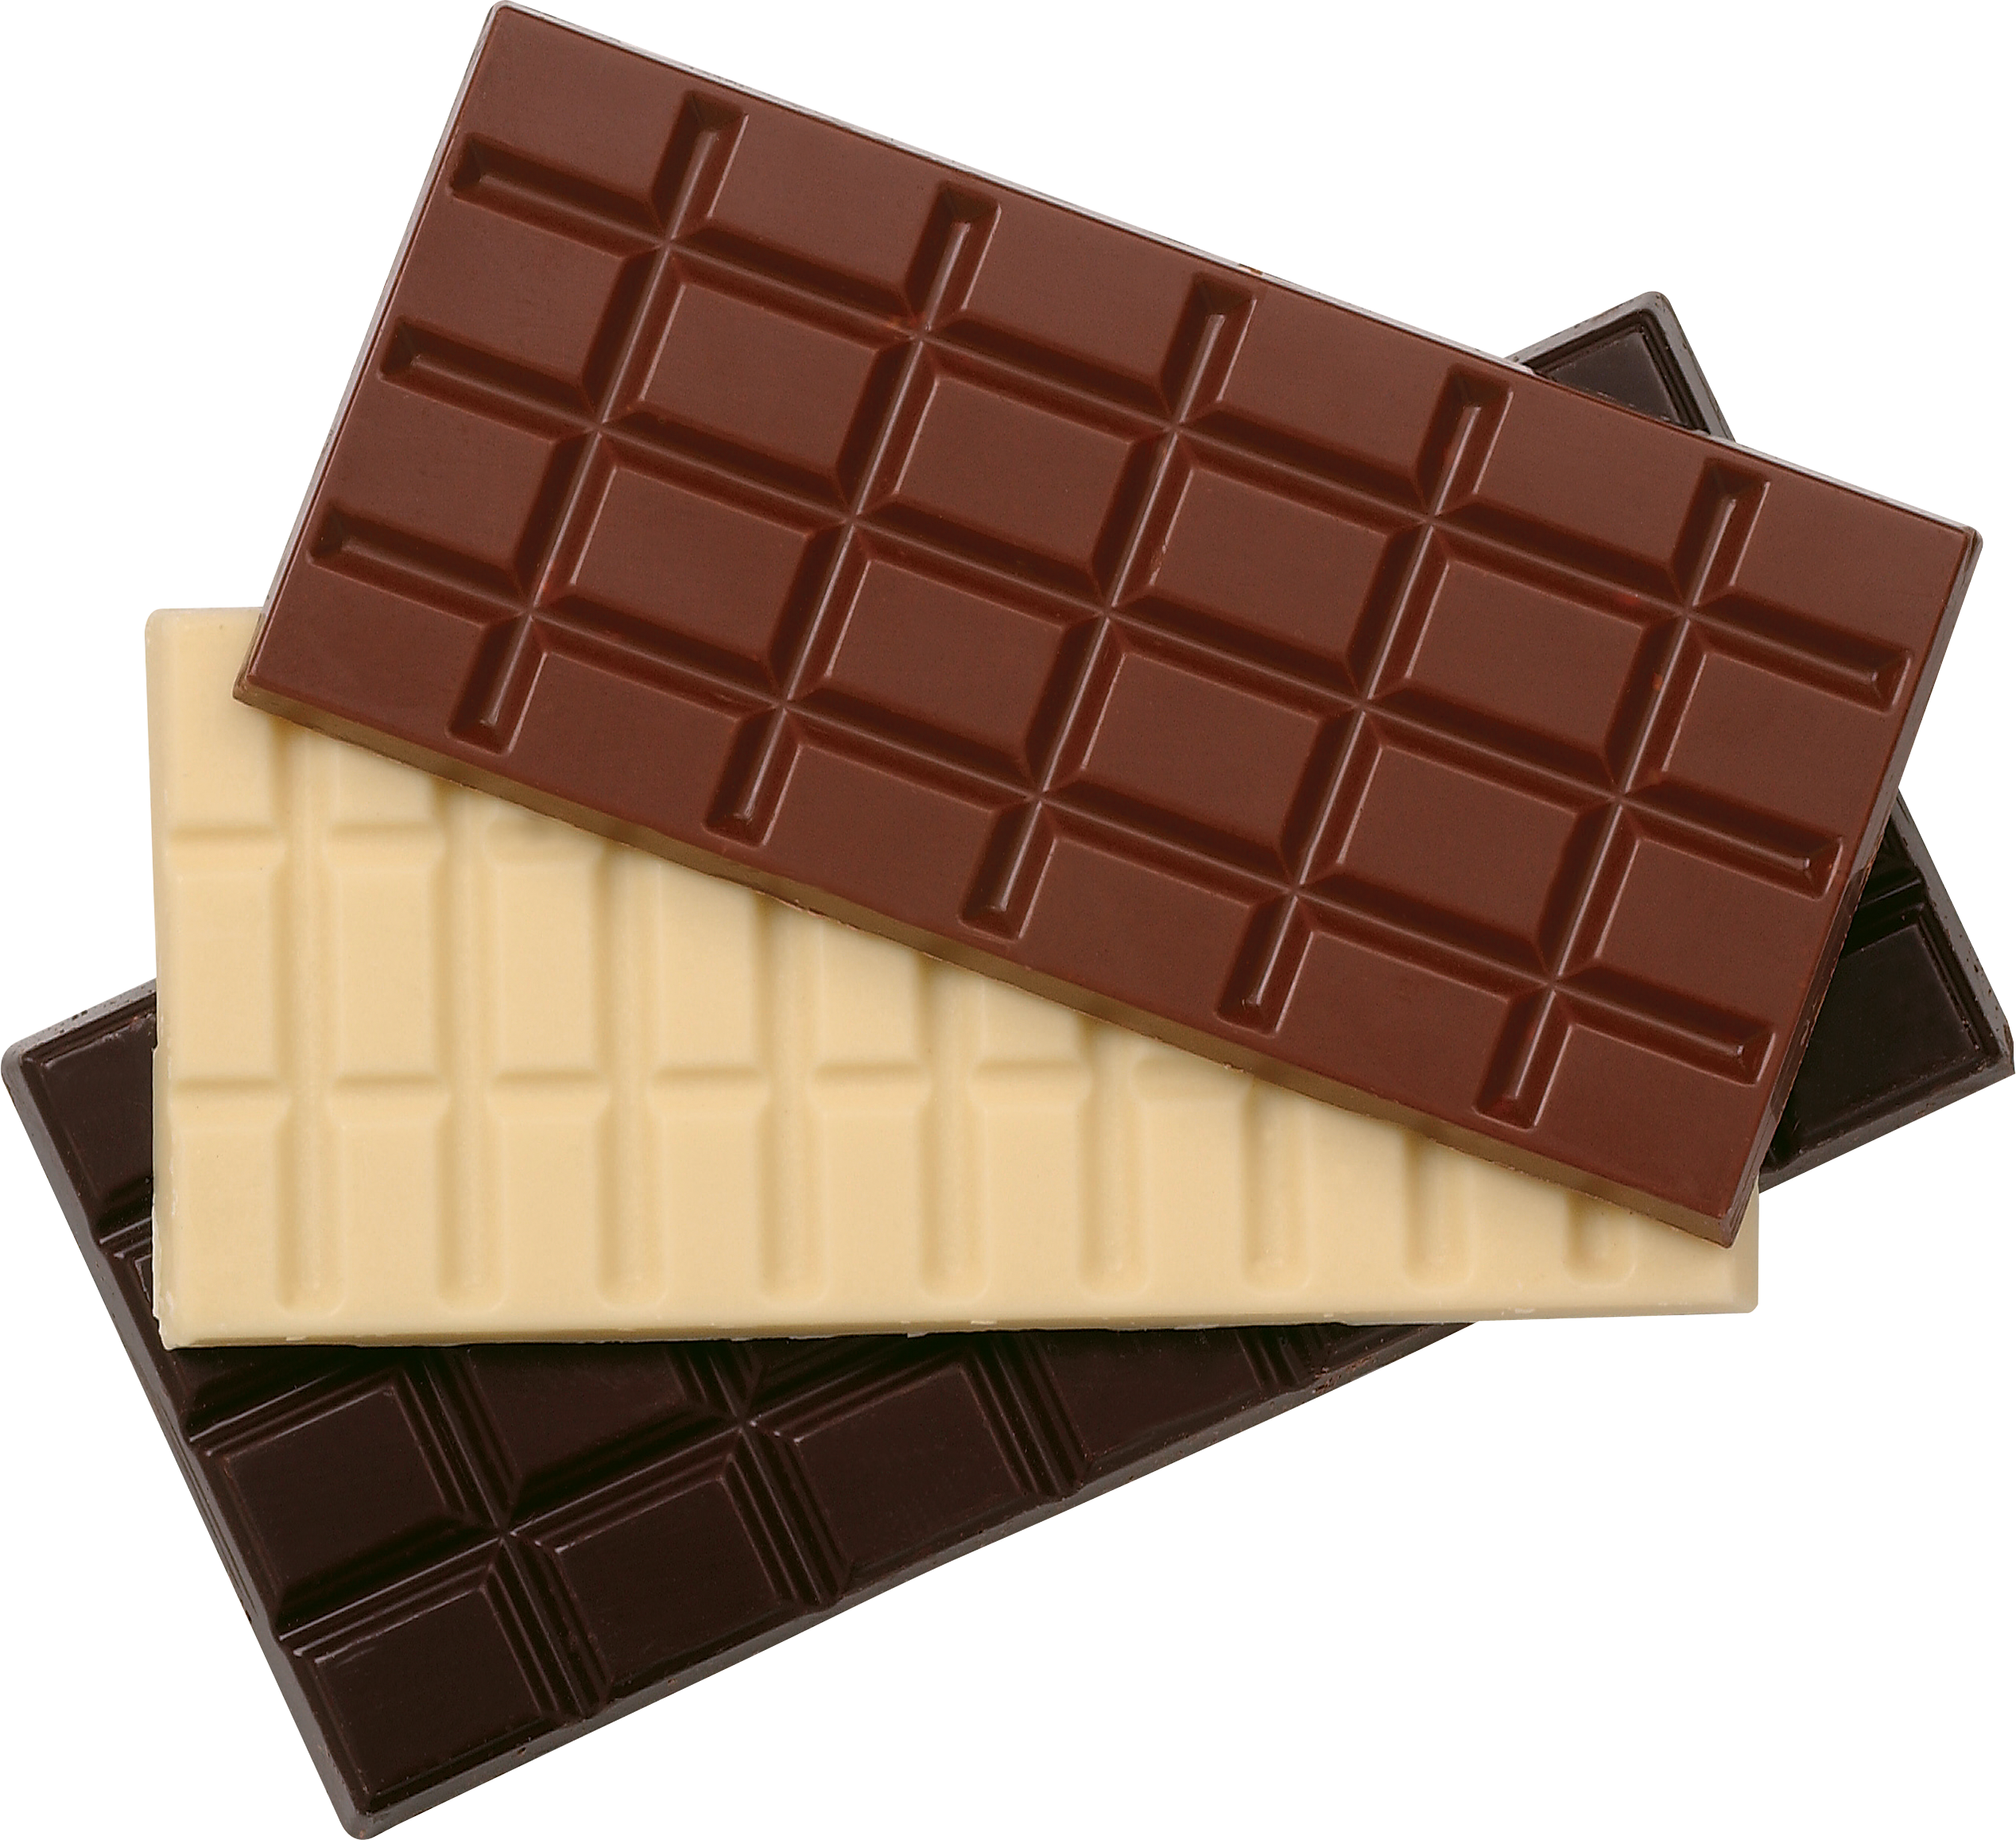 Chocolate png. Images free pictures download